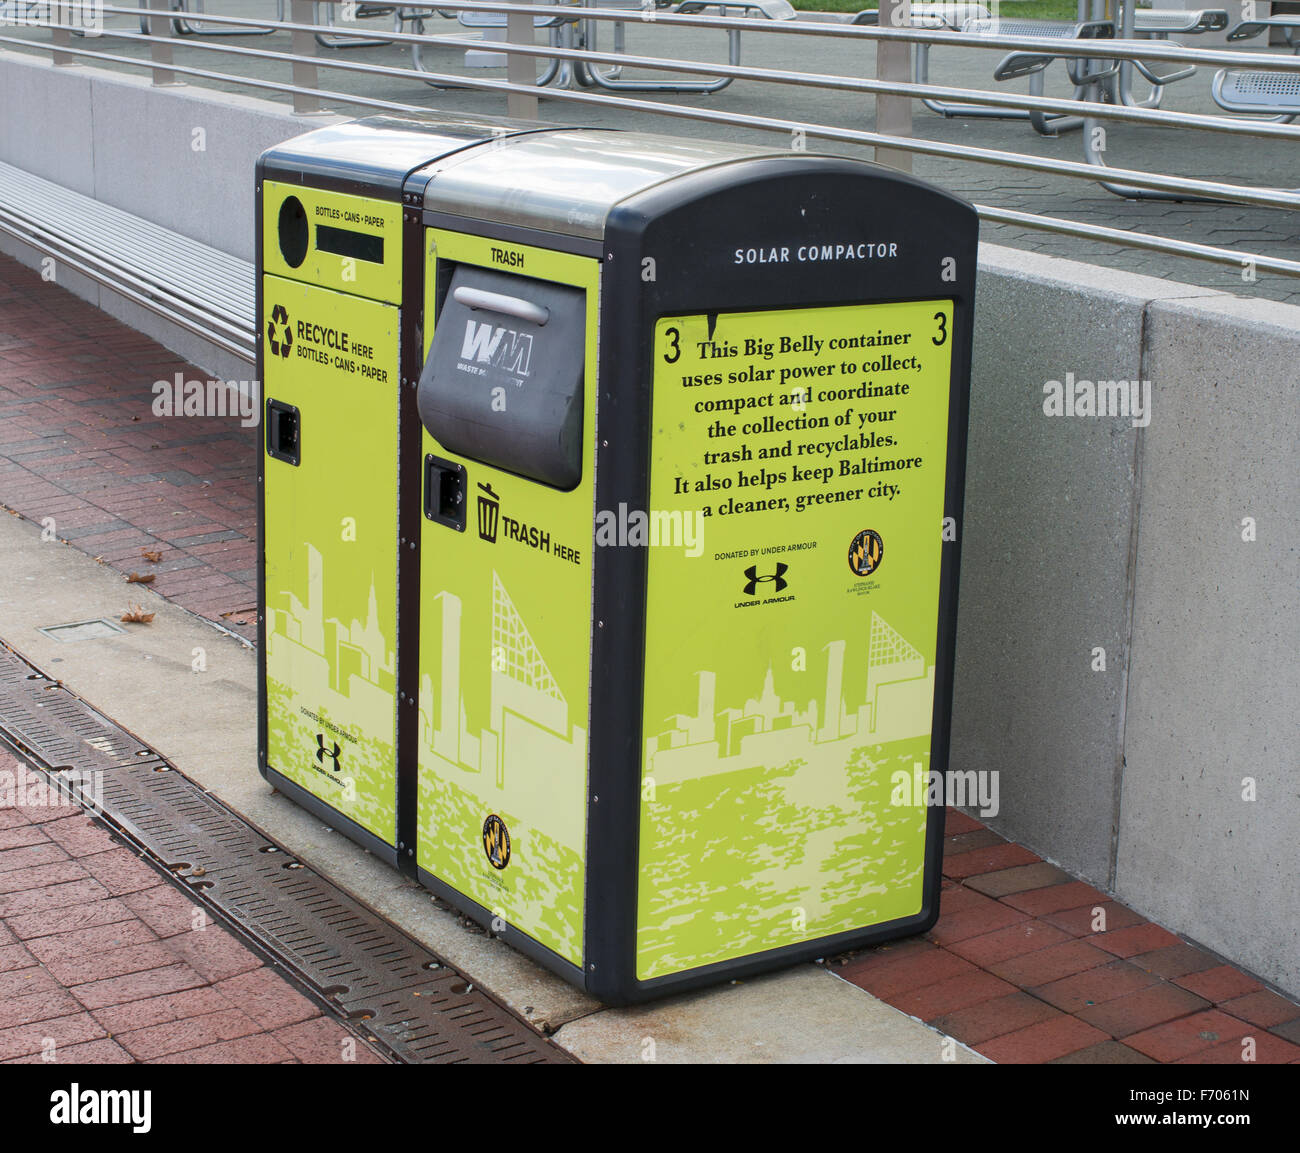 Big belly solar compactor trash can Baltimore, Maryland, USA - Stock Image